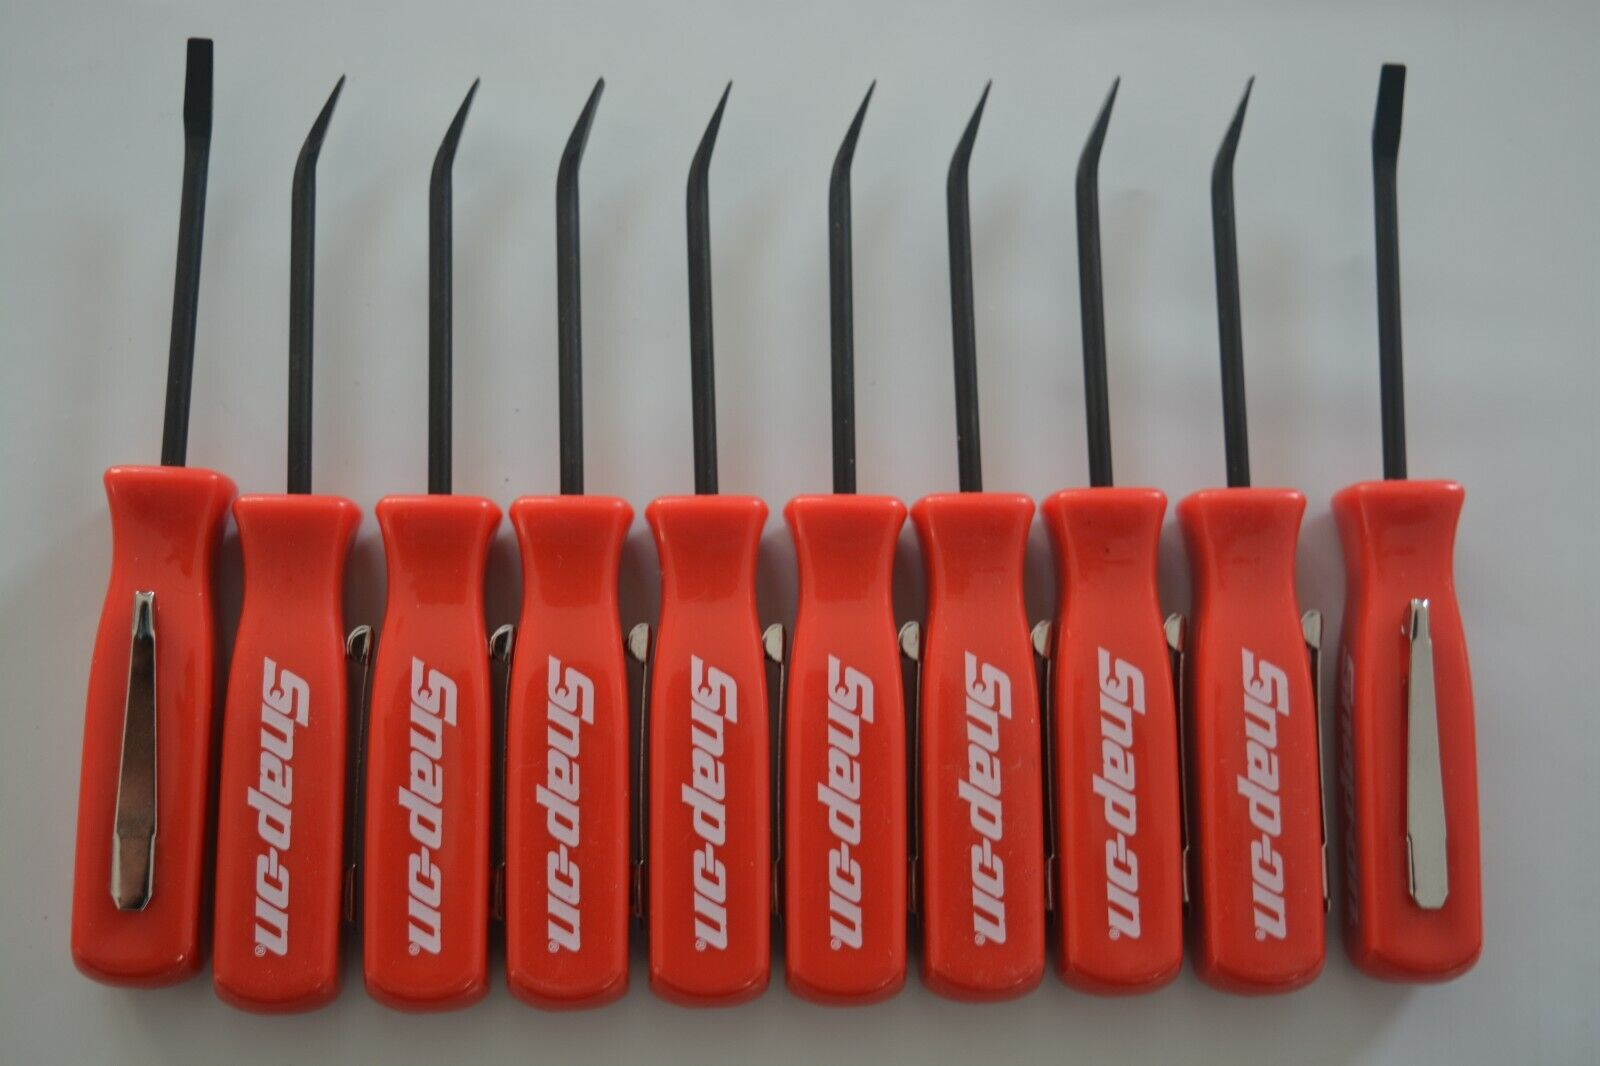 PROMOTIONAL SNAP ON TOOLS MINI POCKET PRY BAR WITH CLIP FLAT TIP RED HANDLE 10PC